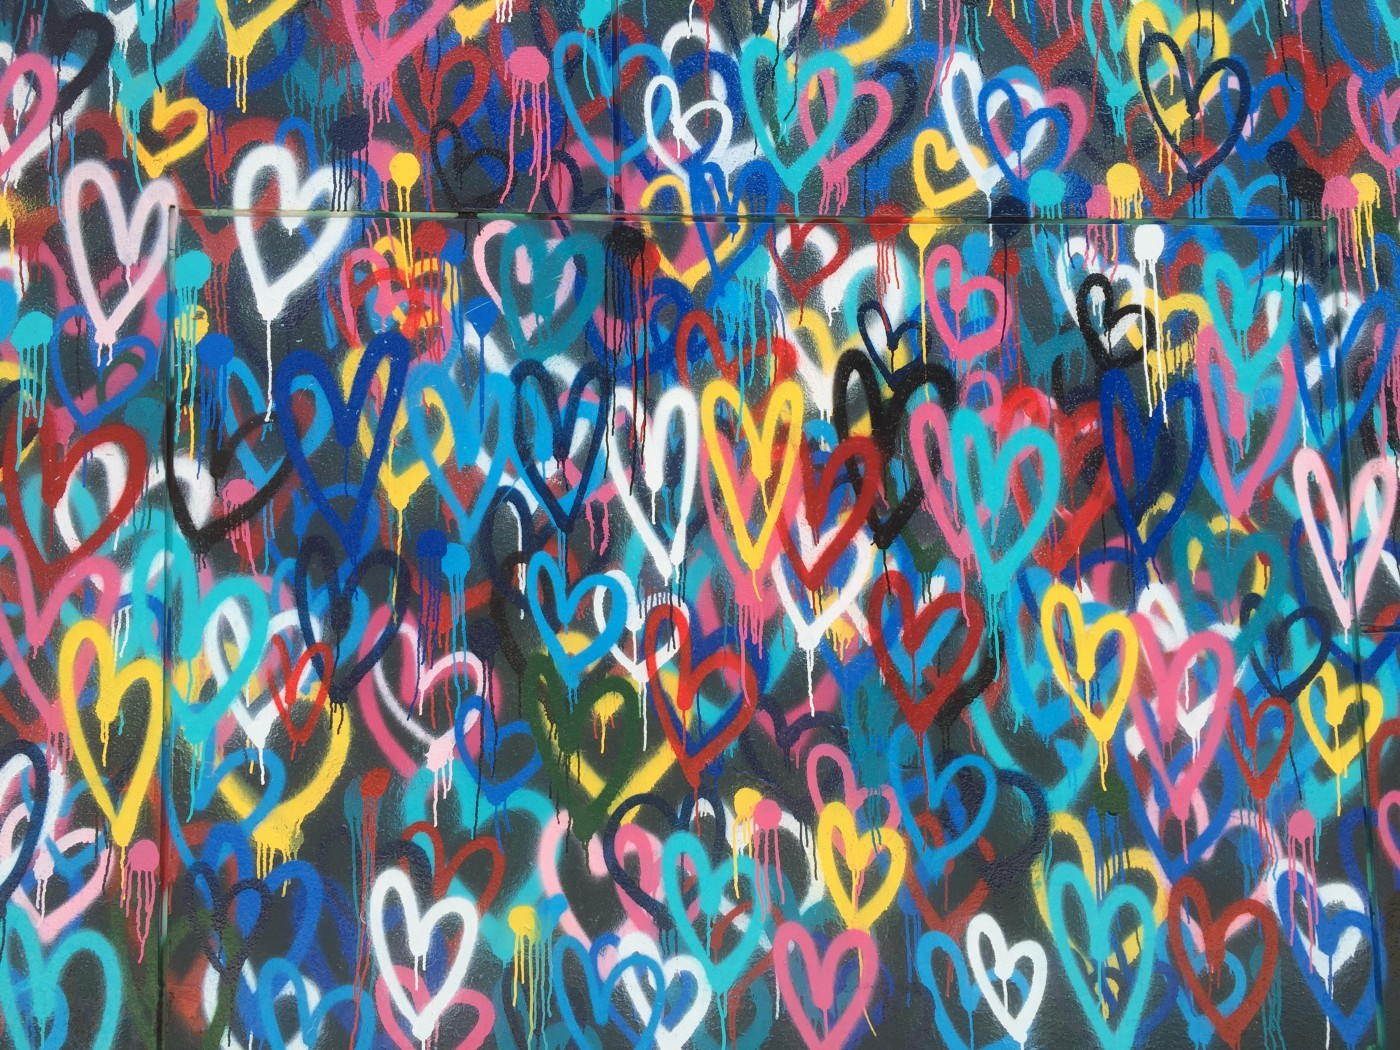 A painting with different colored hearts